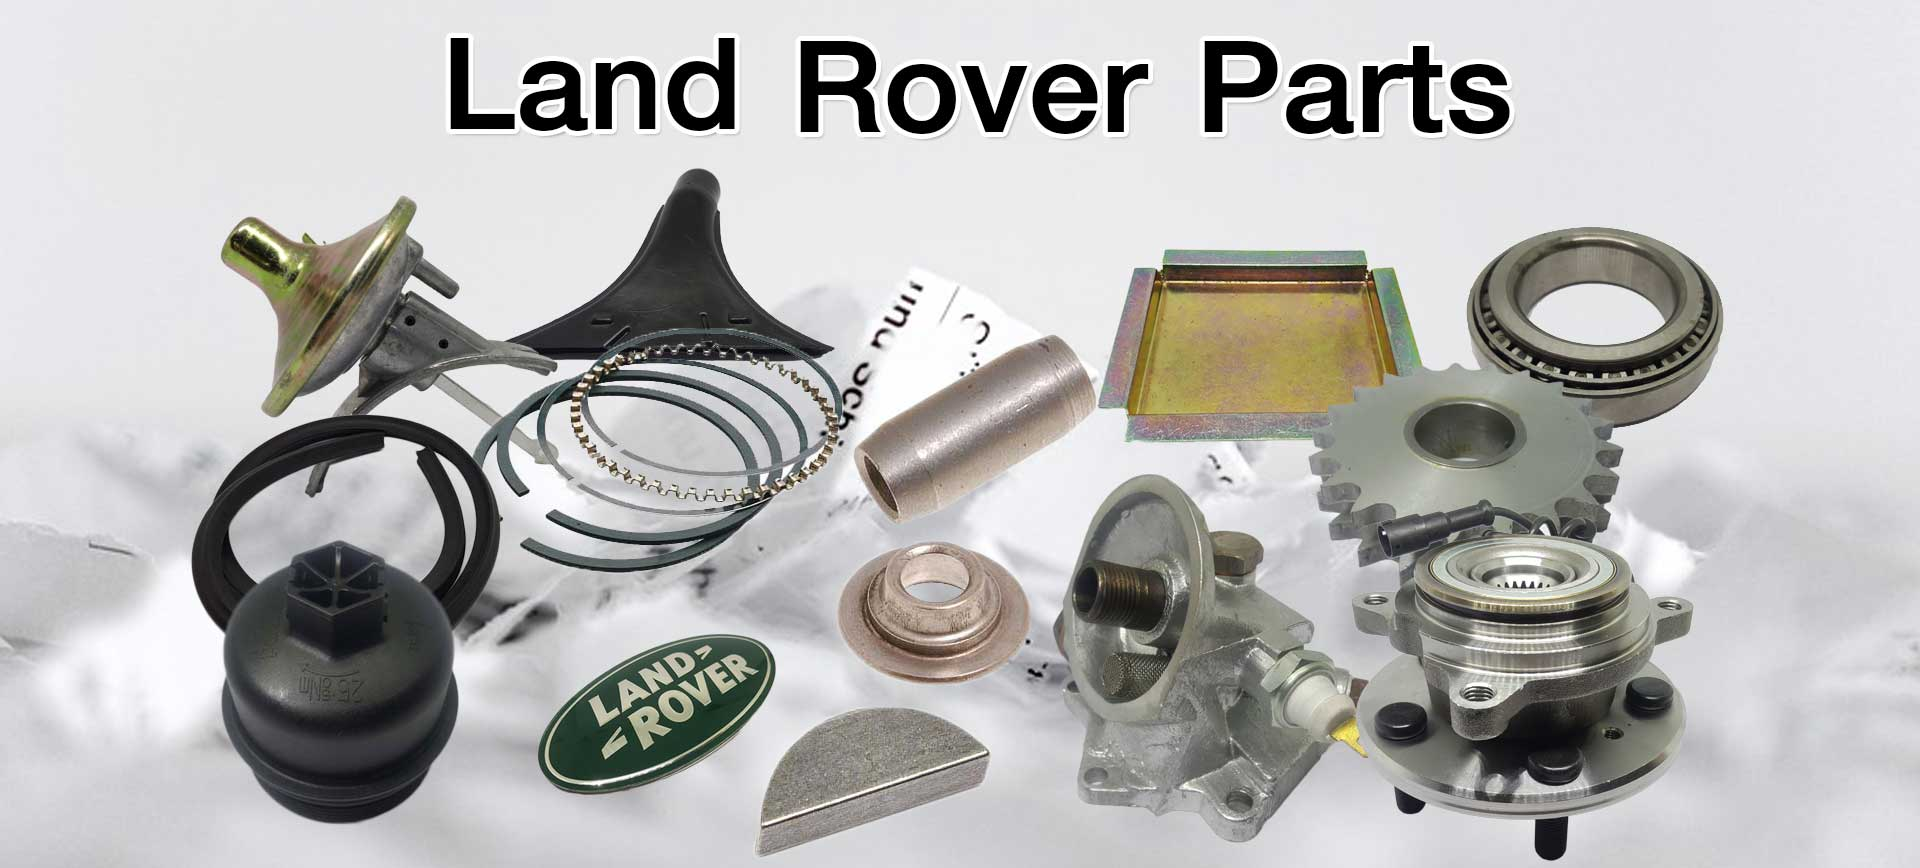 LCC is a specialized Land Rover and Alfa Romeo Service & restoration